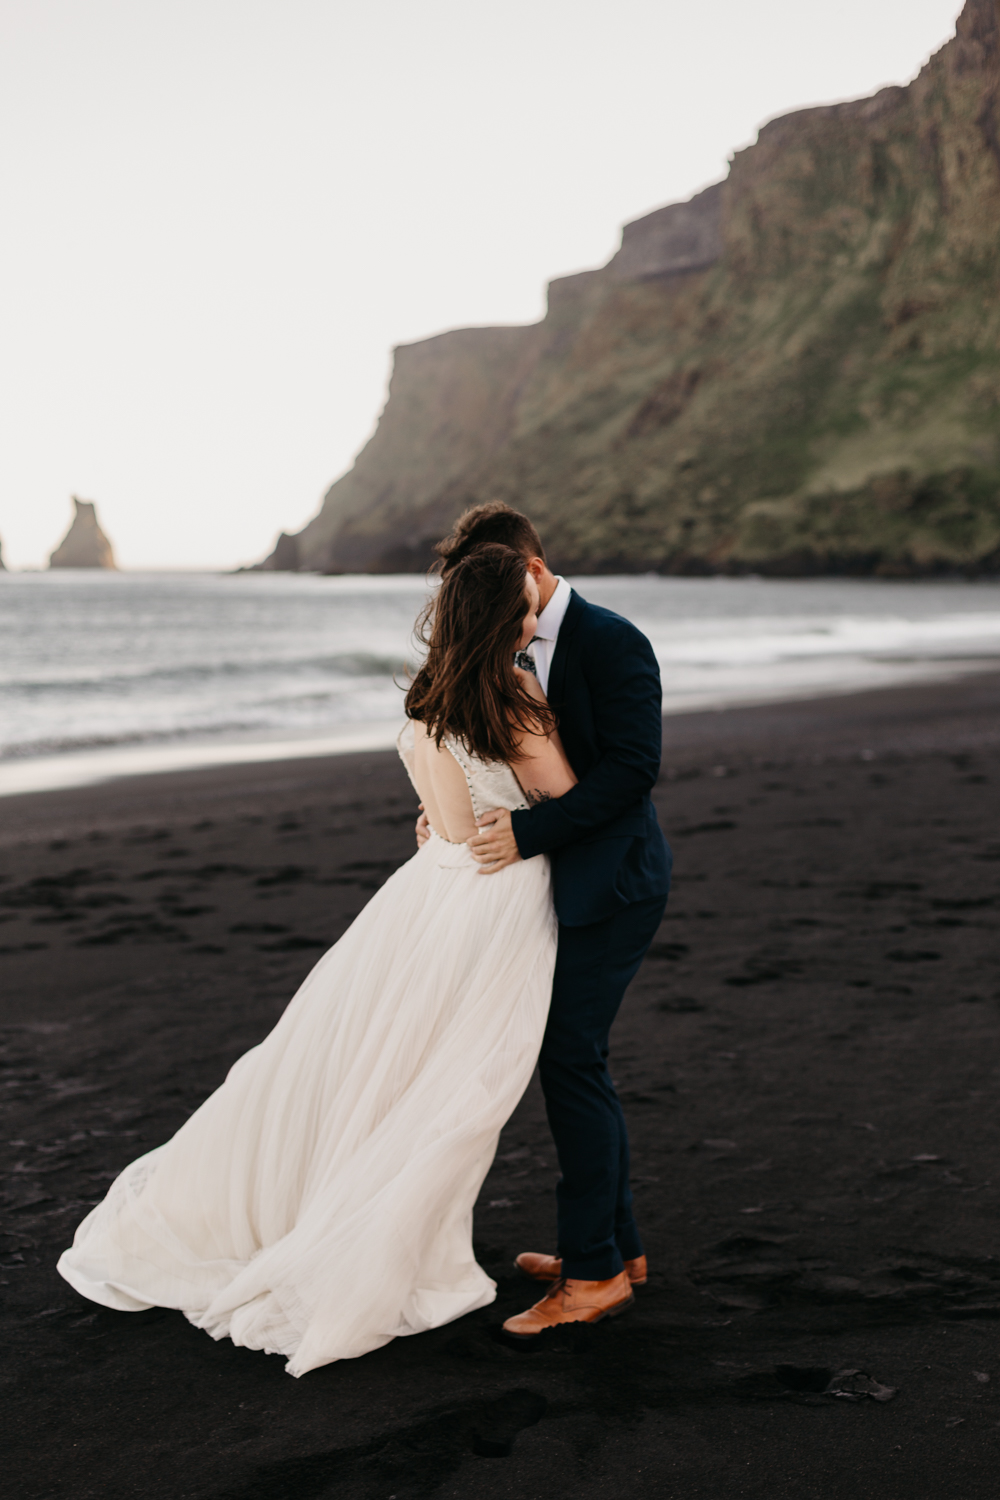 anna szczekutowicz iceland wedding photogapher elopement photographer-97.jpg